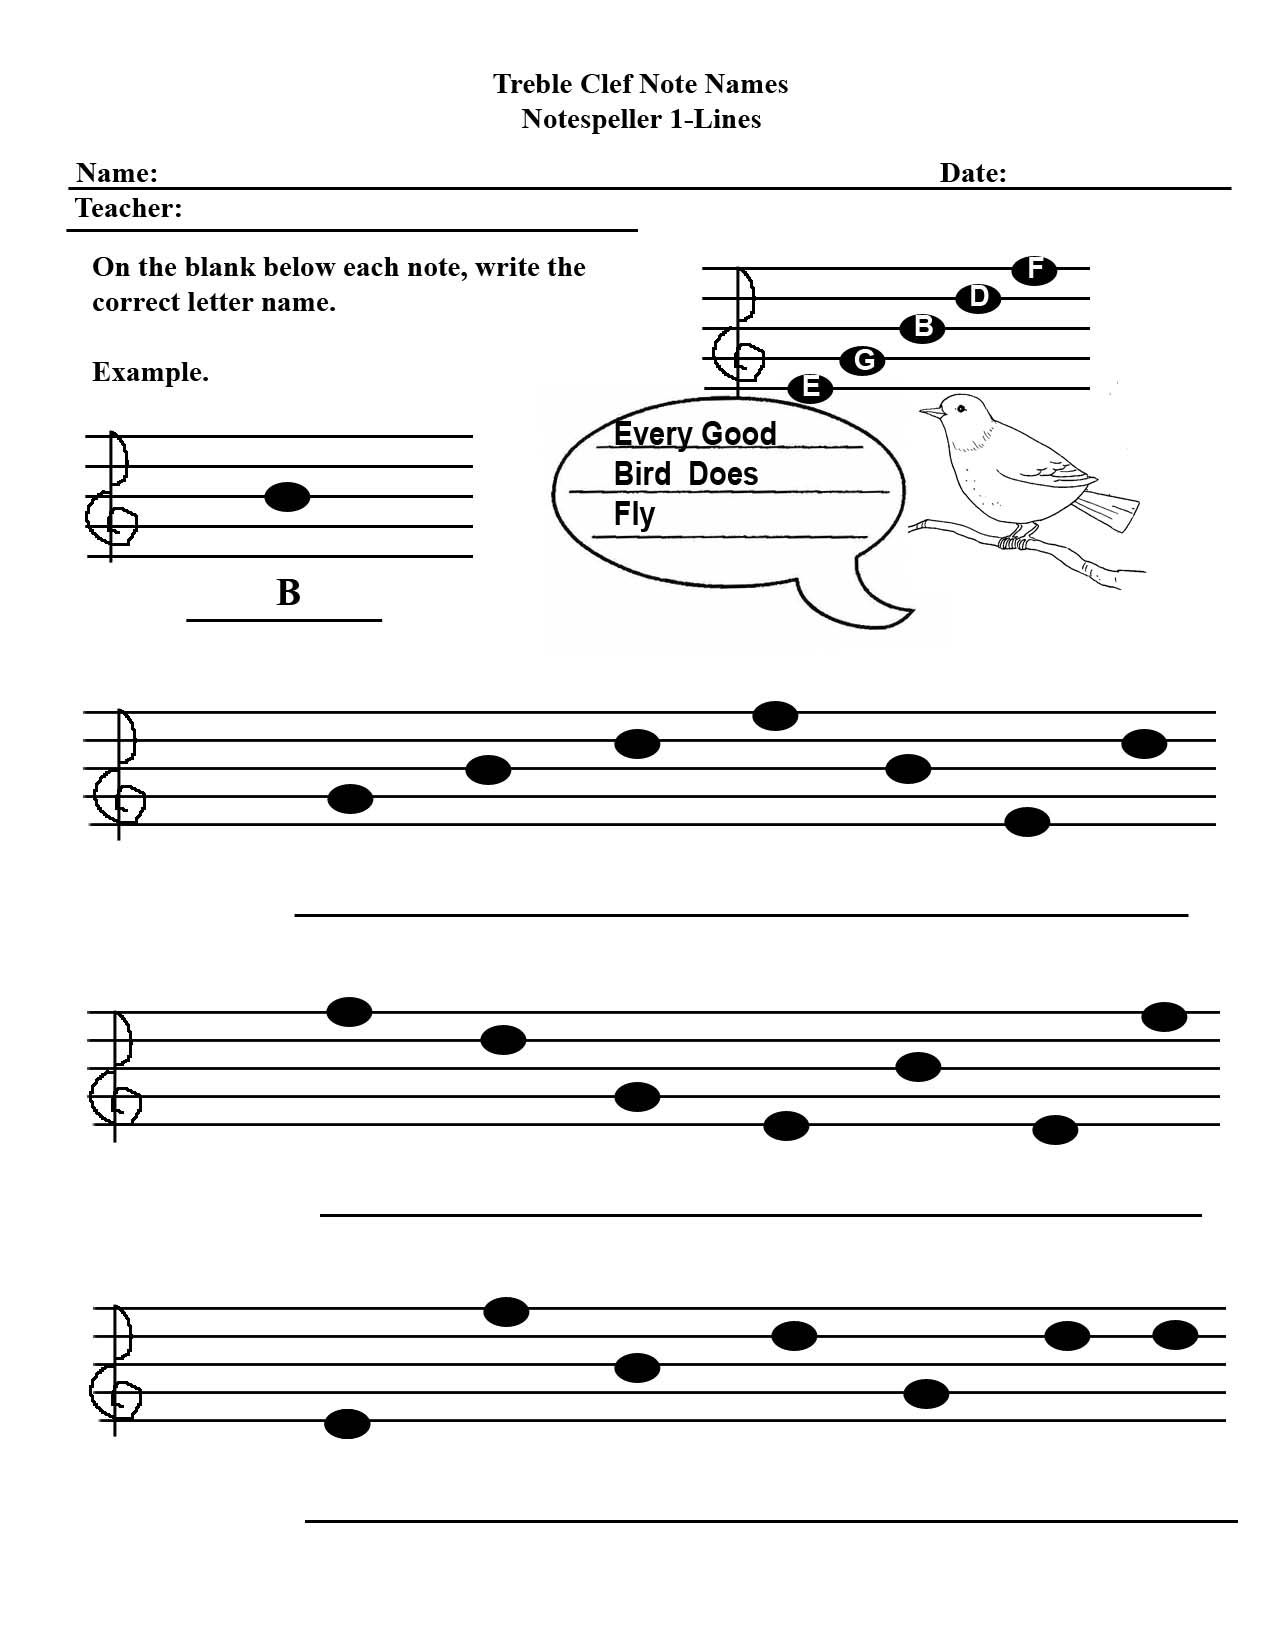 Worksheets Treble Clef Worksheet christy lovenduski teaching studio elementary music treble clef note names worksheet